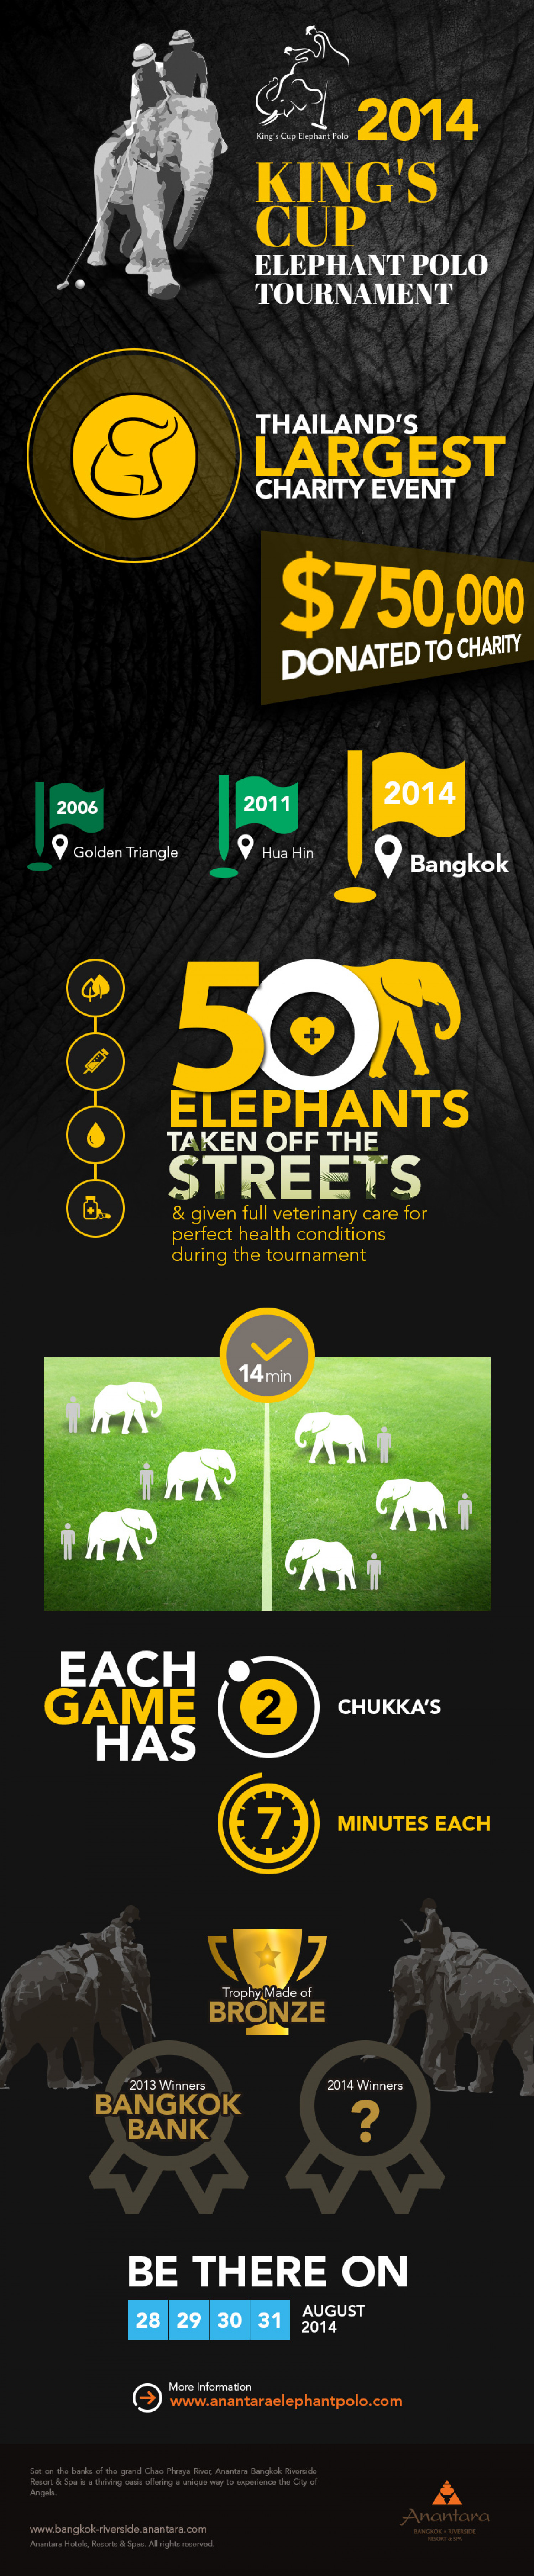 King's Cup Elephant Polo Tournament Infographic